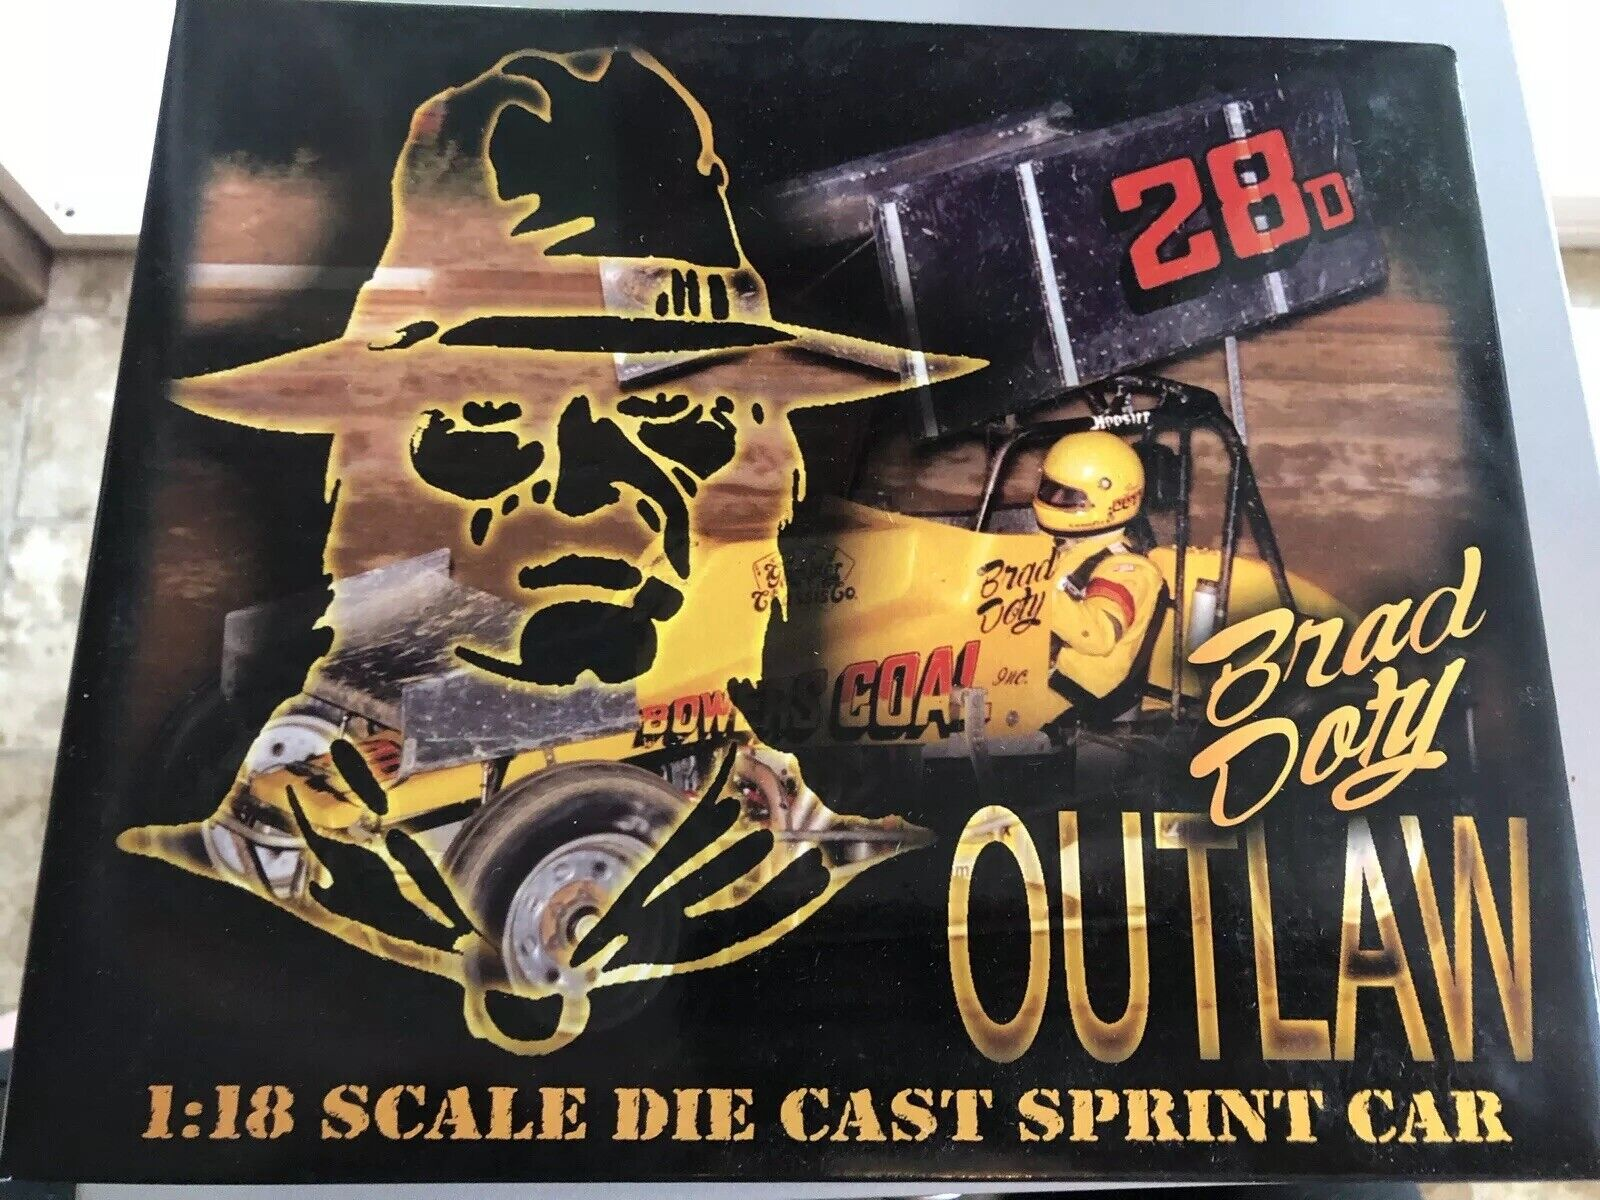 GMP BRAD DOTY BOWERS COAL OUTLAW METAL WINGED SPRINT DIRT CAR  28D 1 18 SCALE